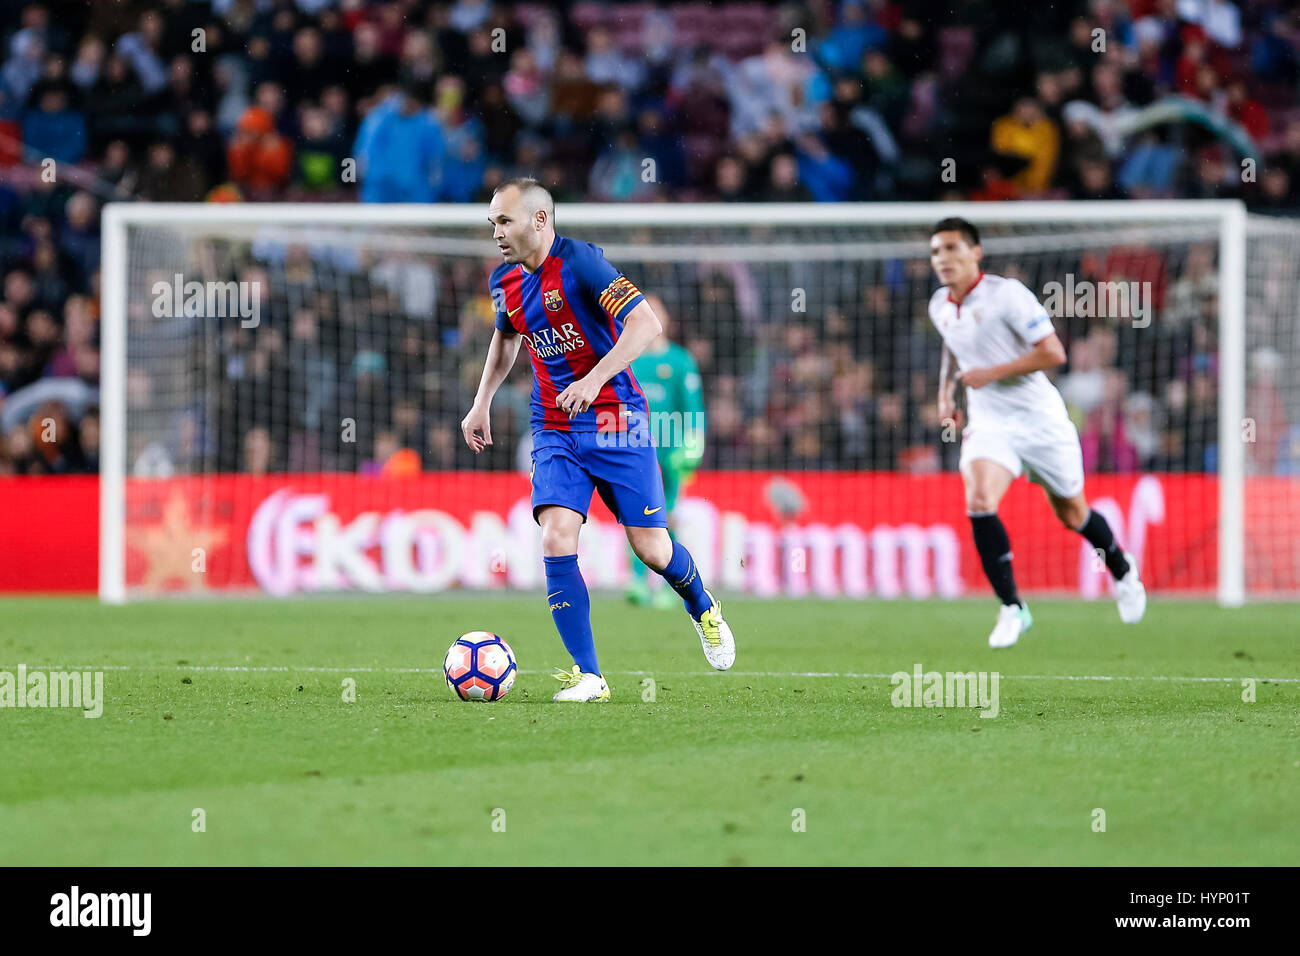 April 5, 2017: Andres Iniesta during the match between FC Barcelona vs Sevilla, for the round 30 of the Liga Santander, - Stock Image